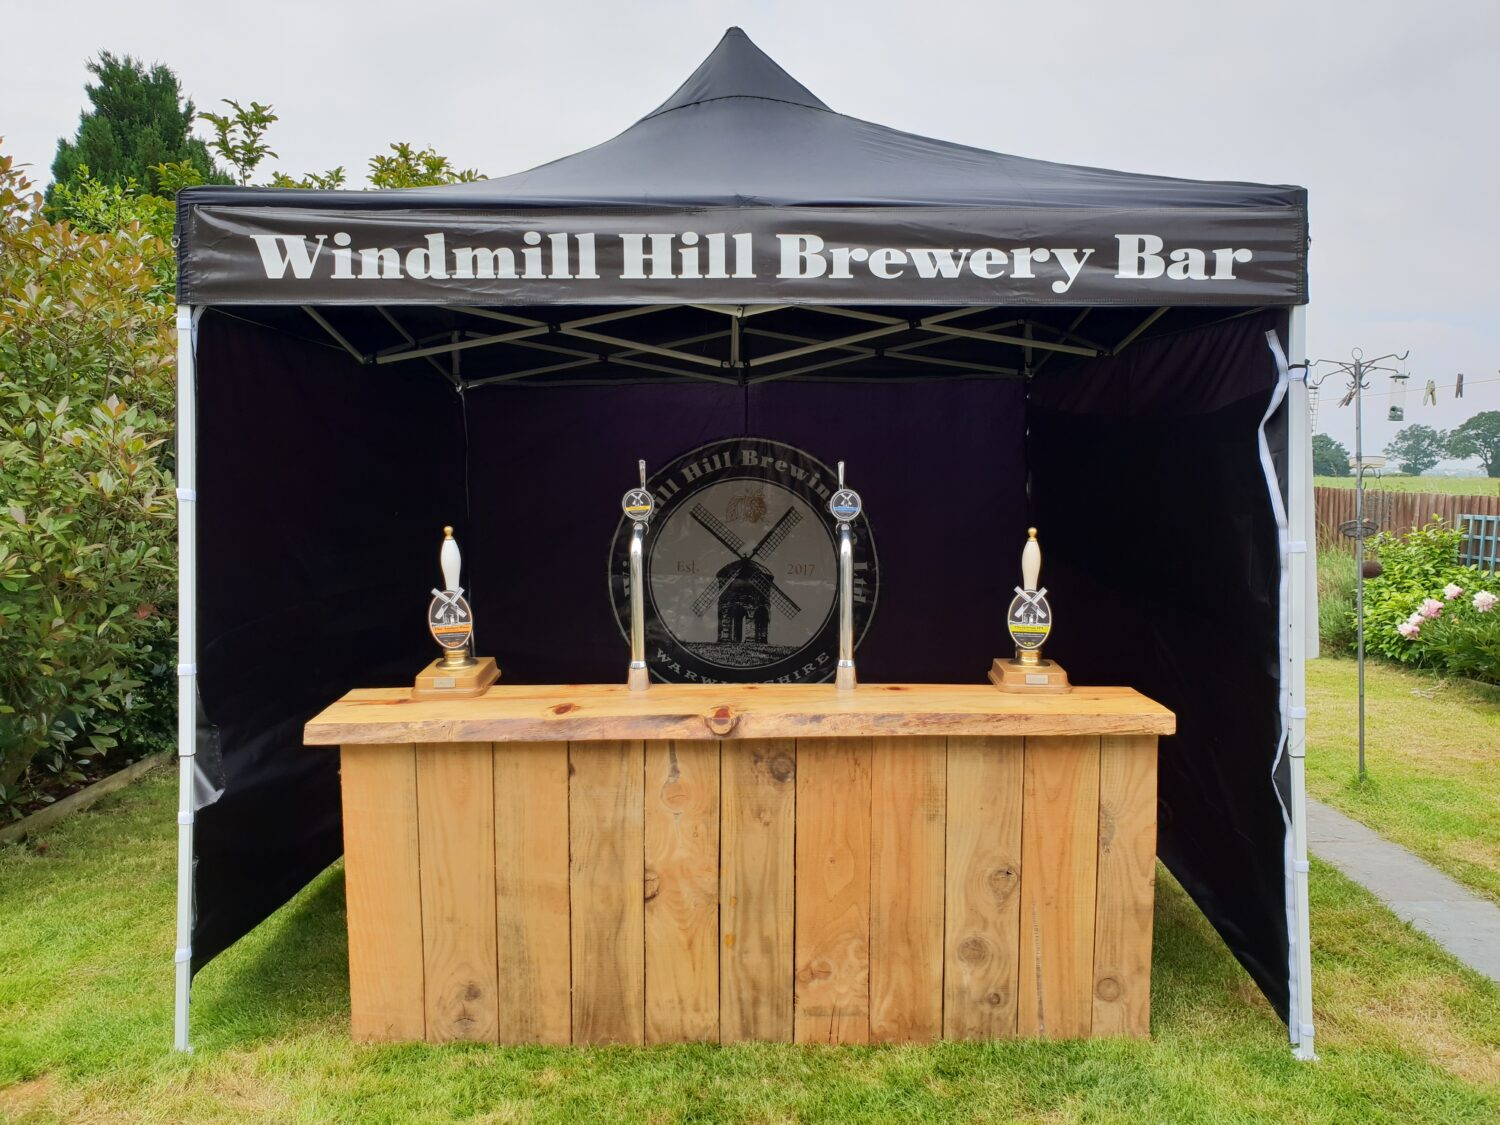 mobile bar leamington spa, pulled with passion, warwickshire based brewey